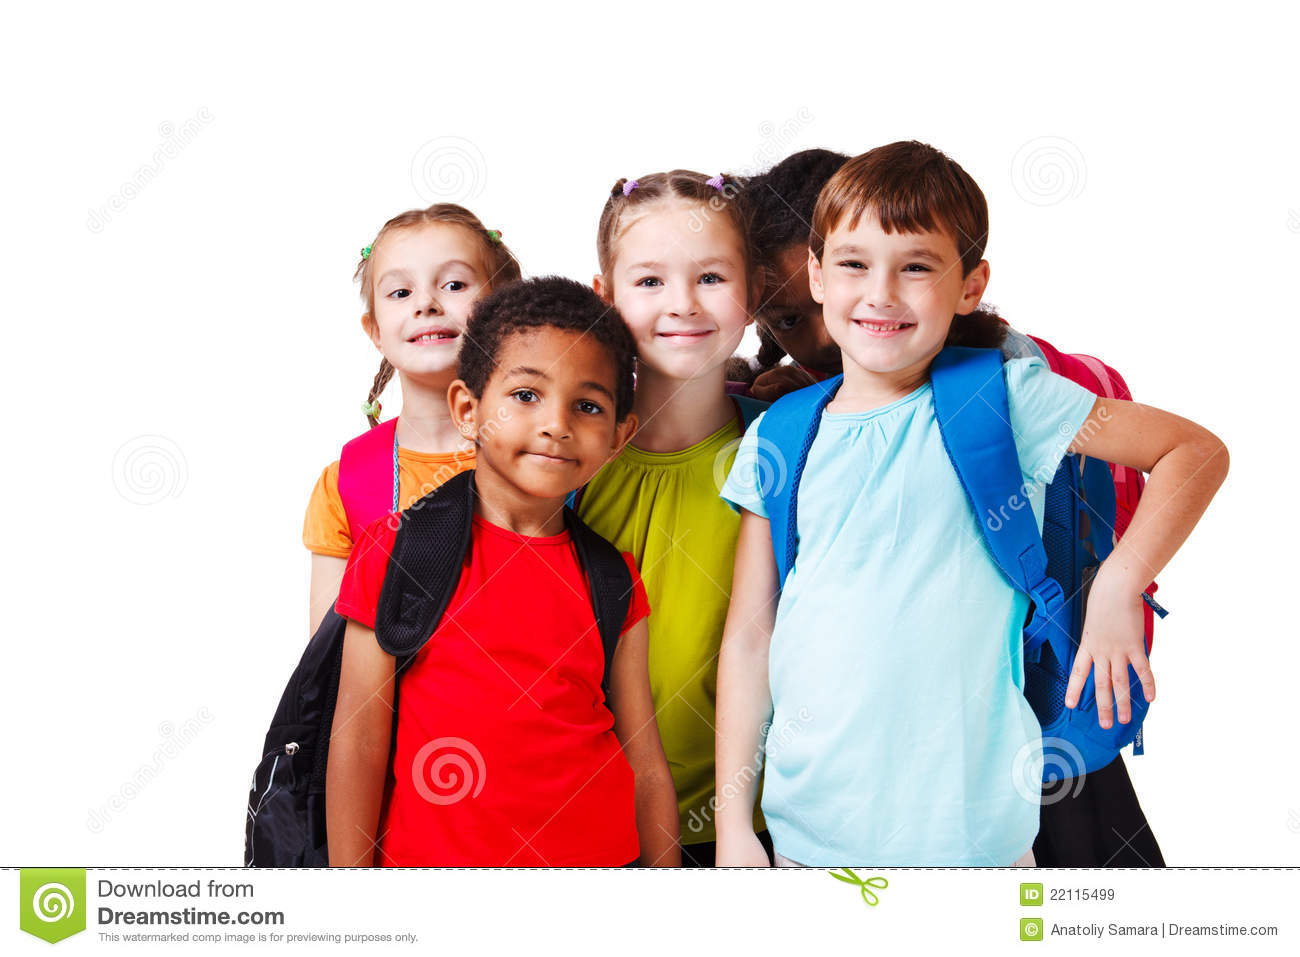 backpack kids - Kids Images Free Download